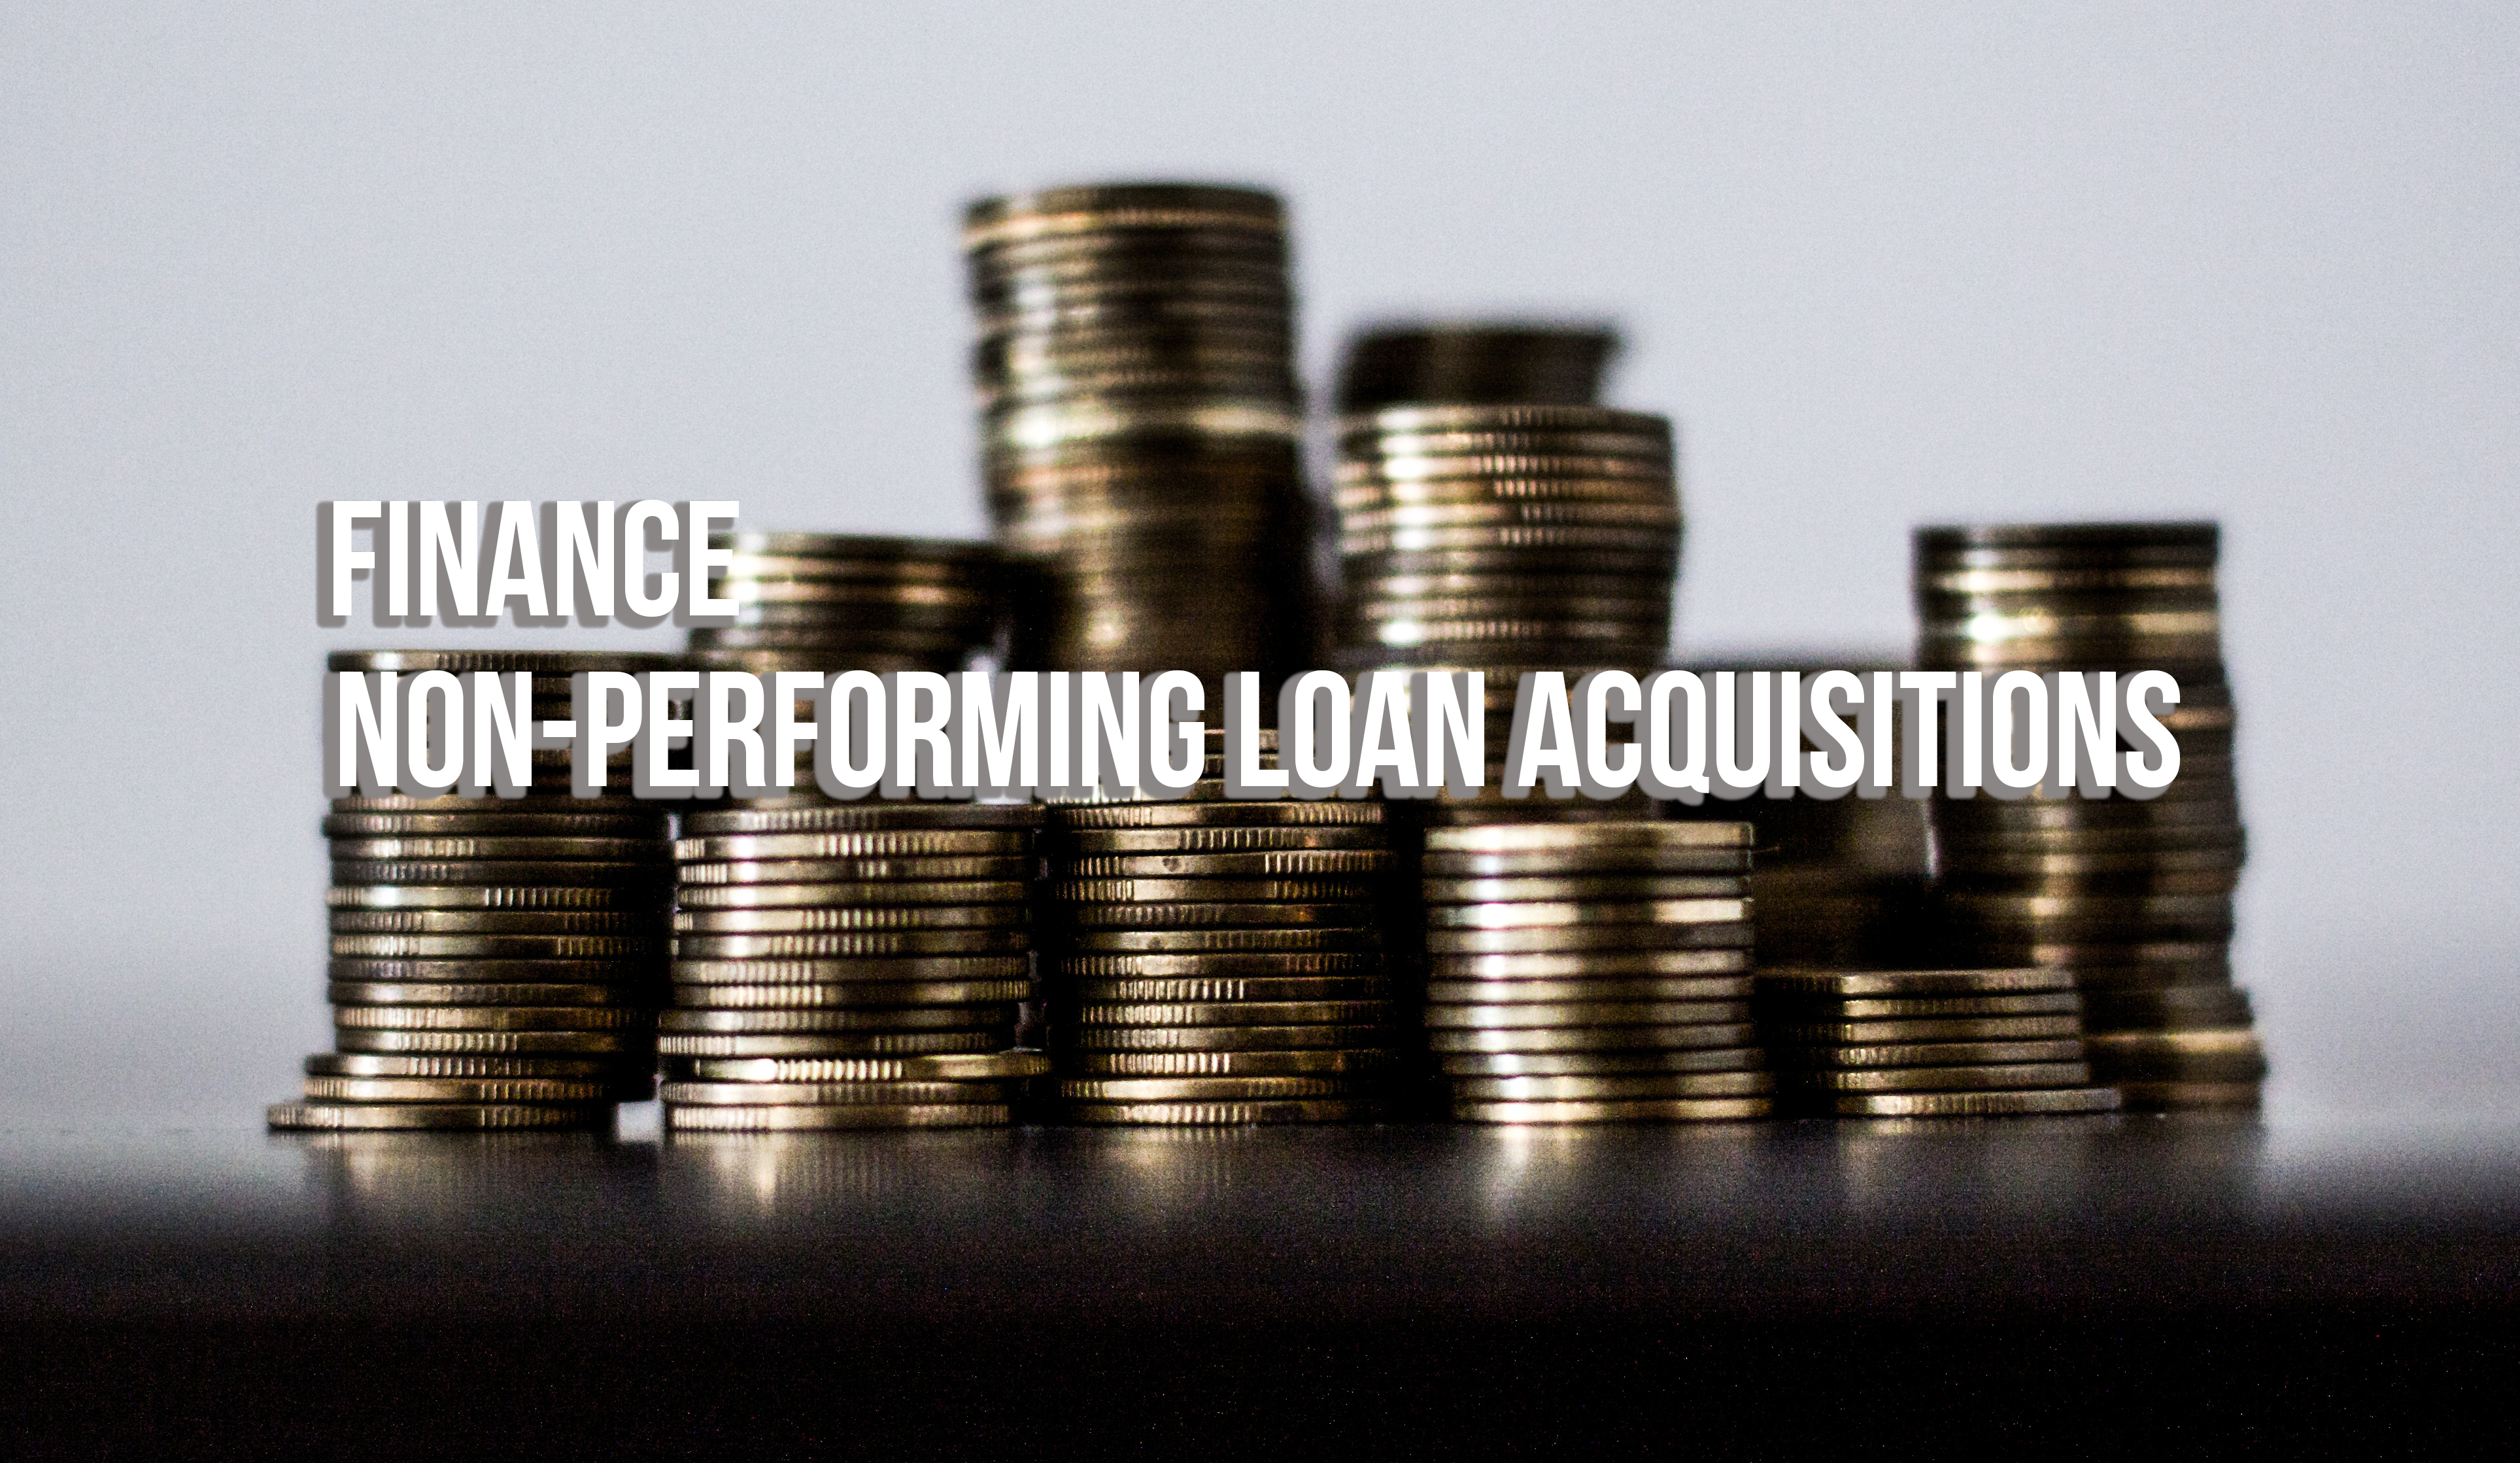 How To Finance Non-performing Loan Financing